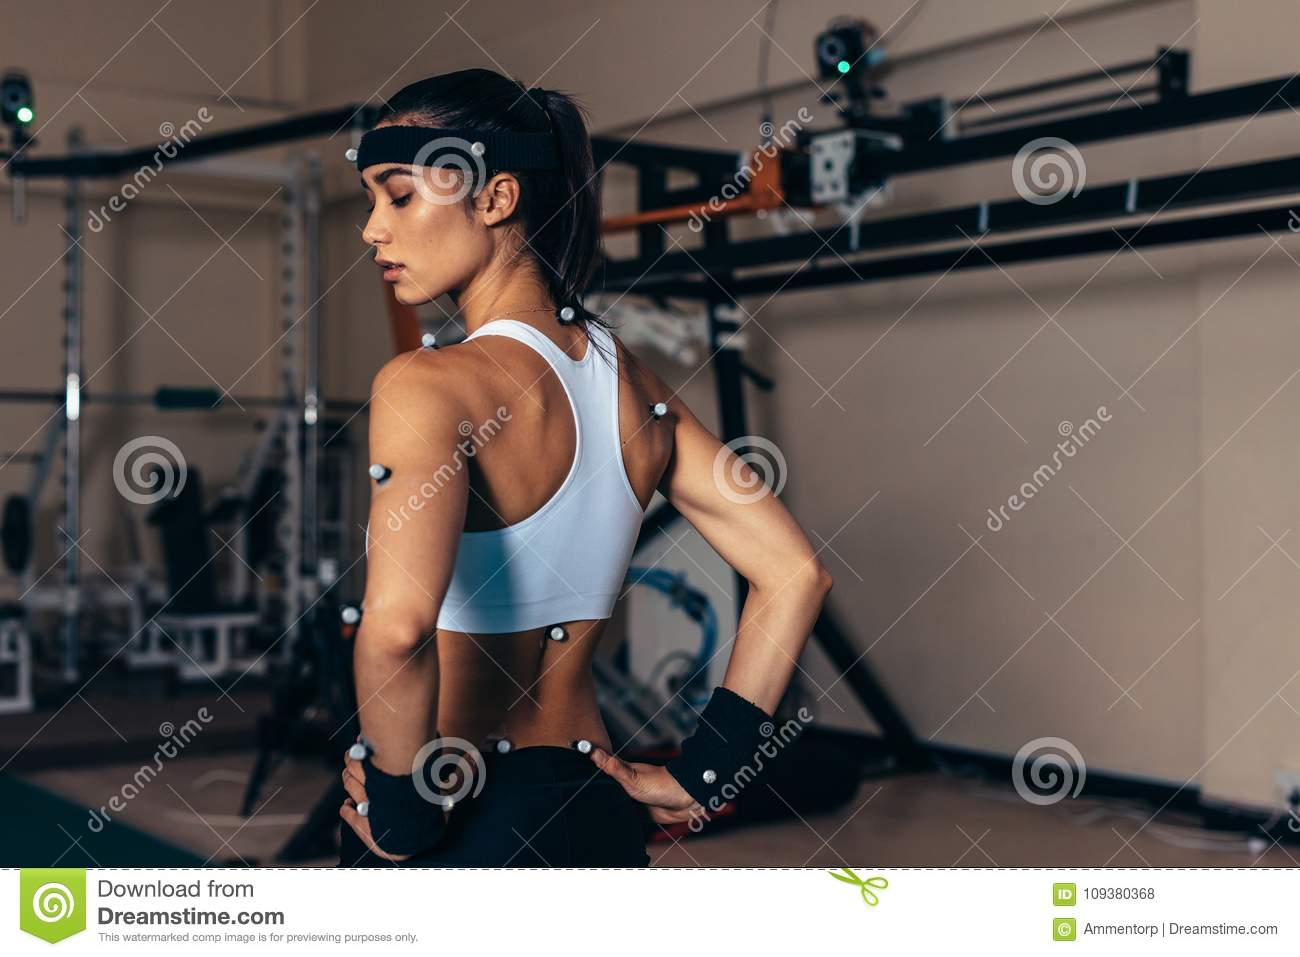 Sportswoman With Motion Capture Sensors Stock Photo - Image of